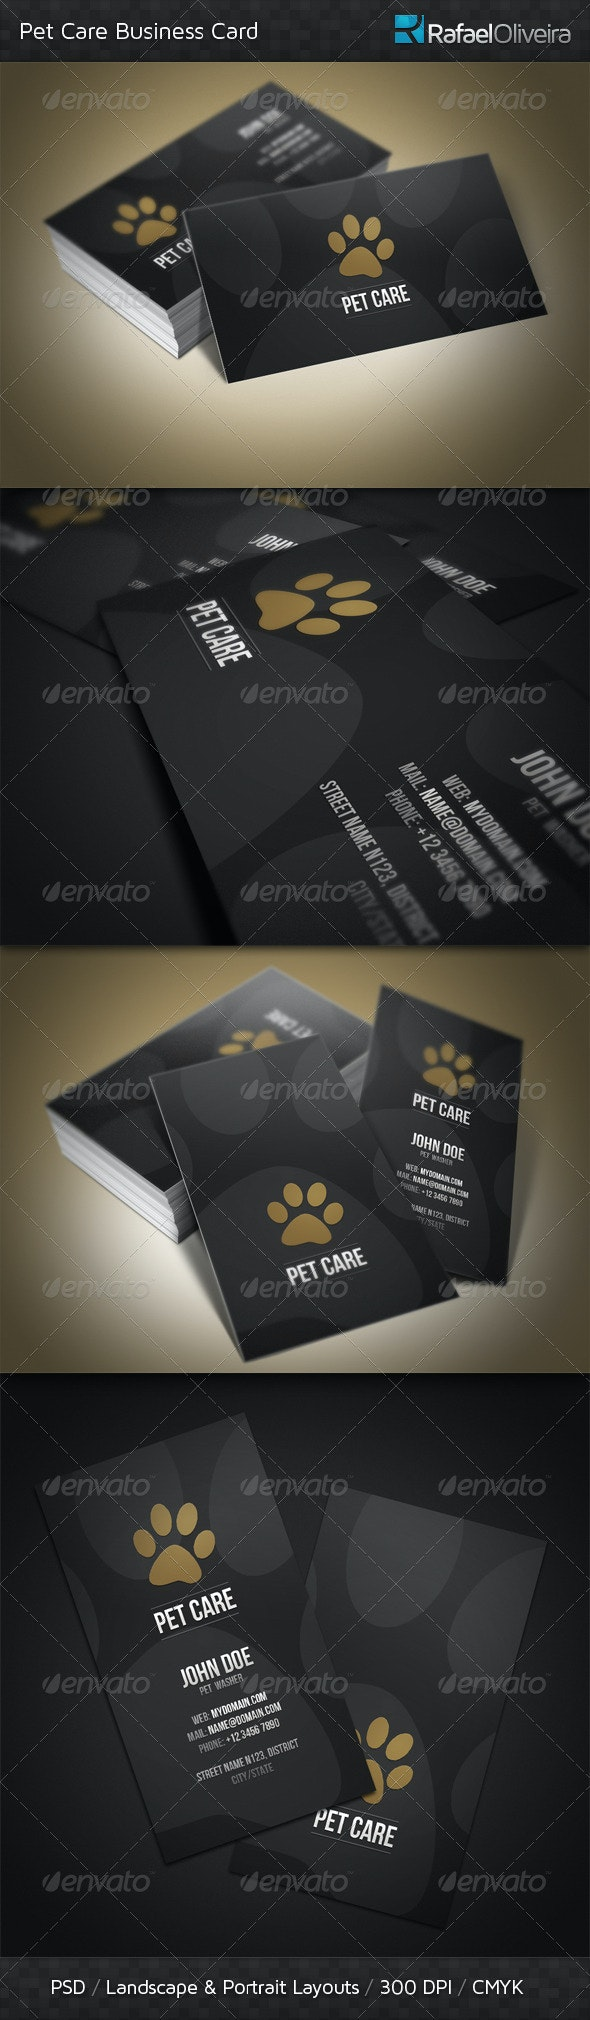 Pet Care Business Card - Industry Specific Business Cards